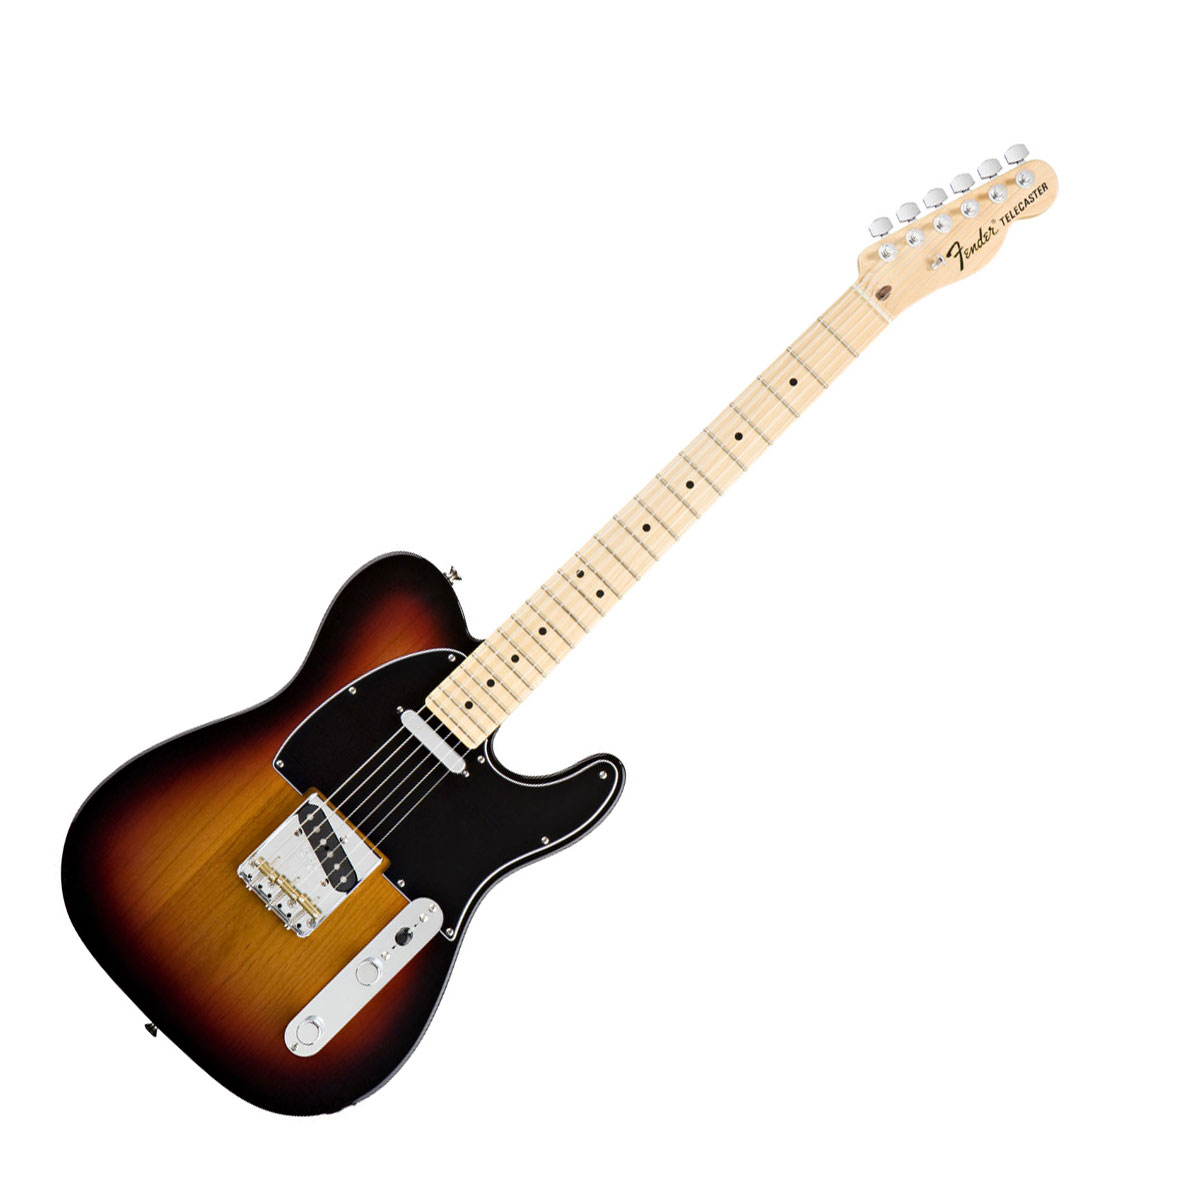 gearfeel reviews fender american special telecaster tone review and demo. Black Bedroom Furniture Sets. Home Design Ideas